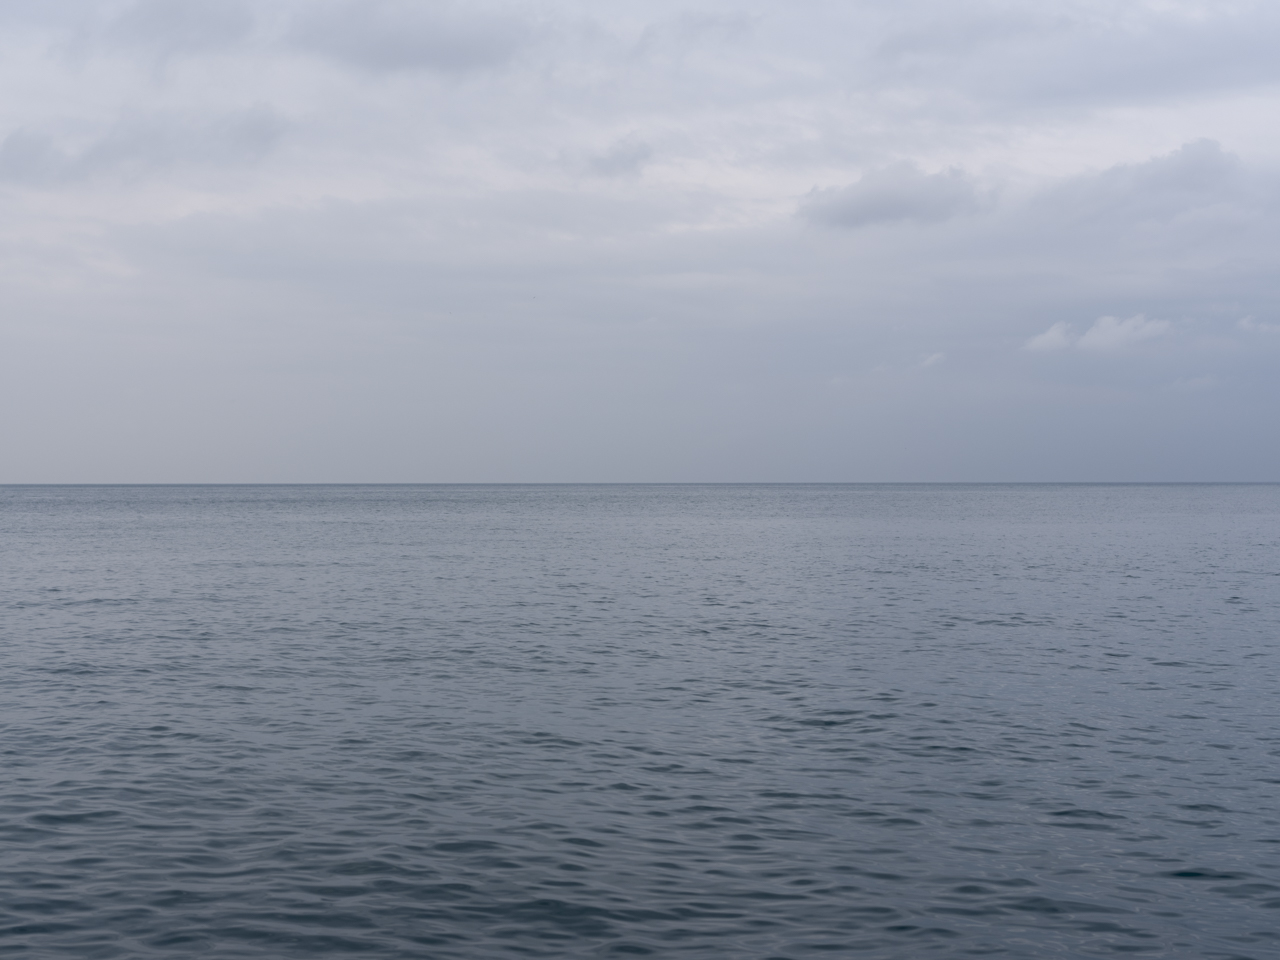 Lake Michigan on a gray and still day